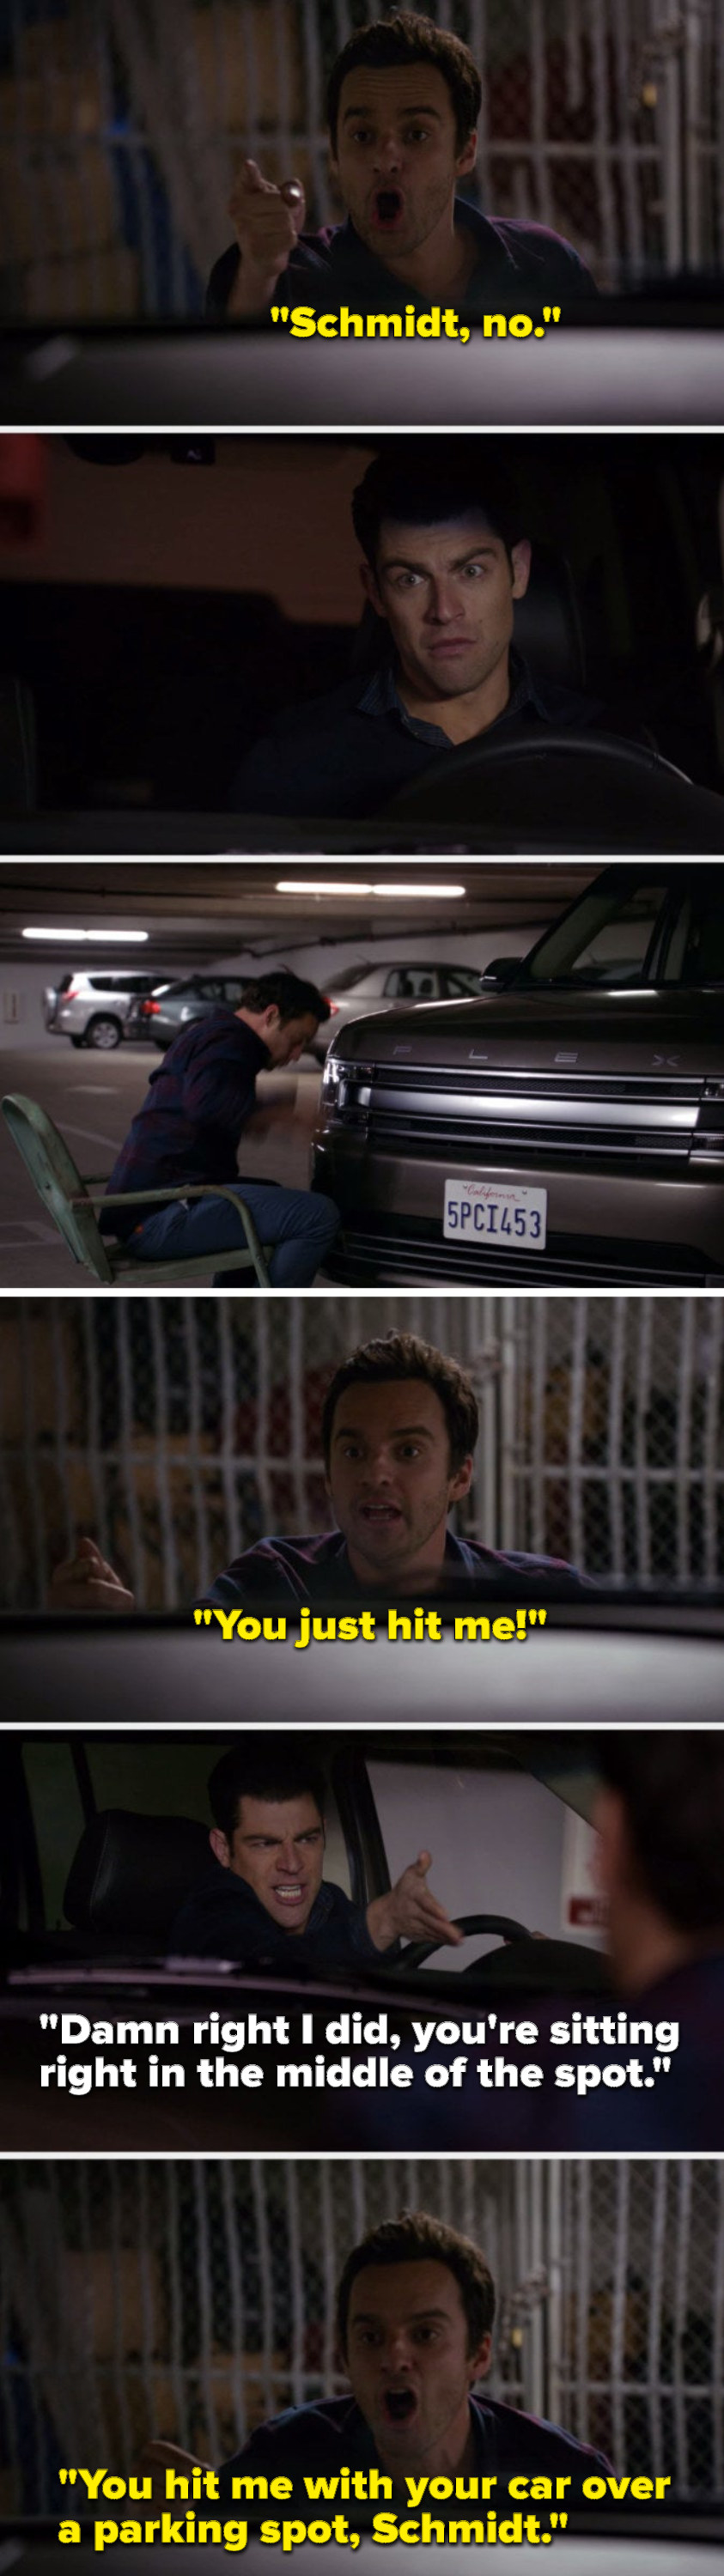 """Nick says, """"Schmidt, no,"""" Schmidt hits Nick and Nick says, """"You just hit me,"""" Schmidt says, """"Damn right I did, you're sitting right in the middle of the spot,"""" and Nick says, """"You hit me with your car over a parking spot, Schmidt"""""""